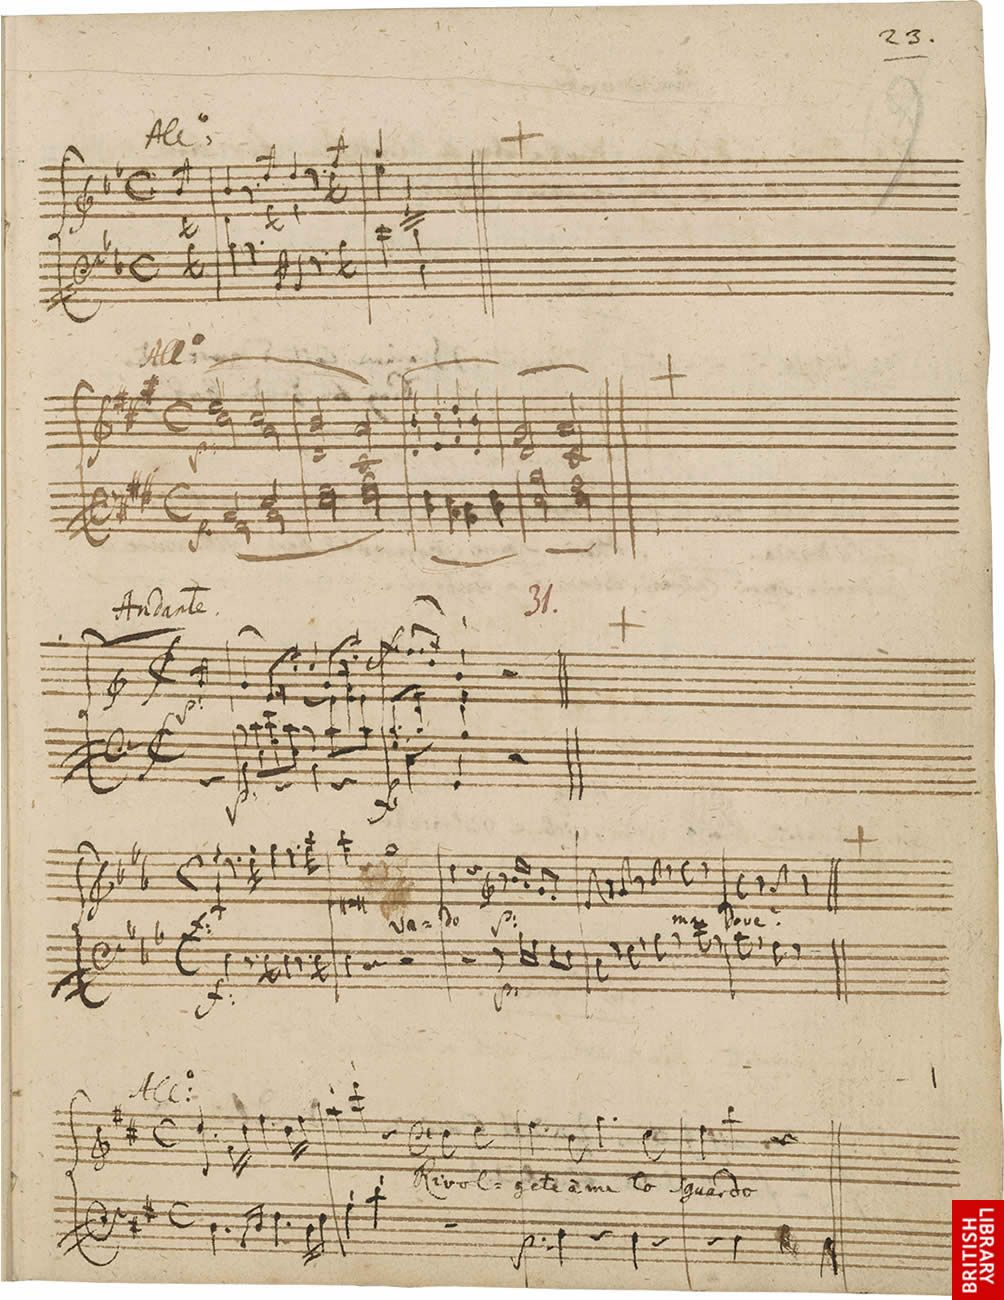 Mozart handwritten music - Composers: write all of your music by ...